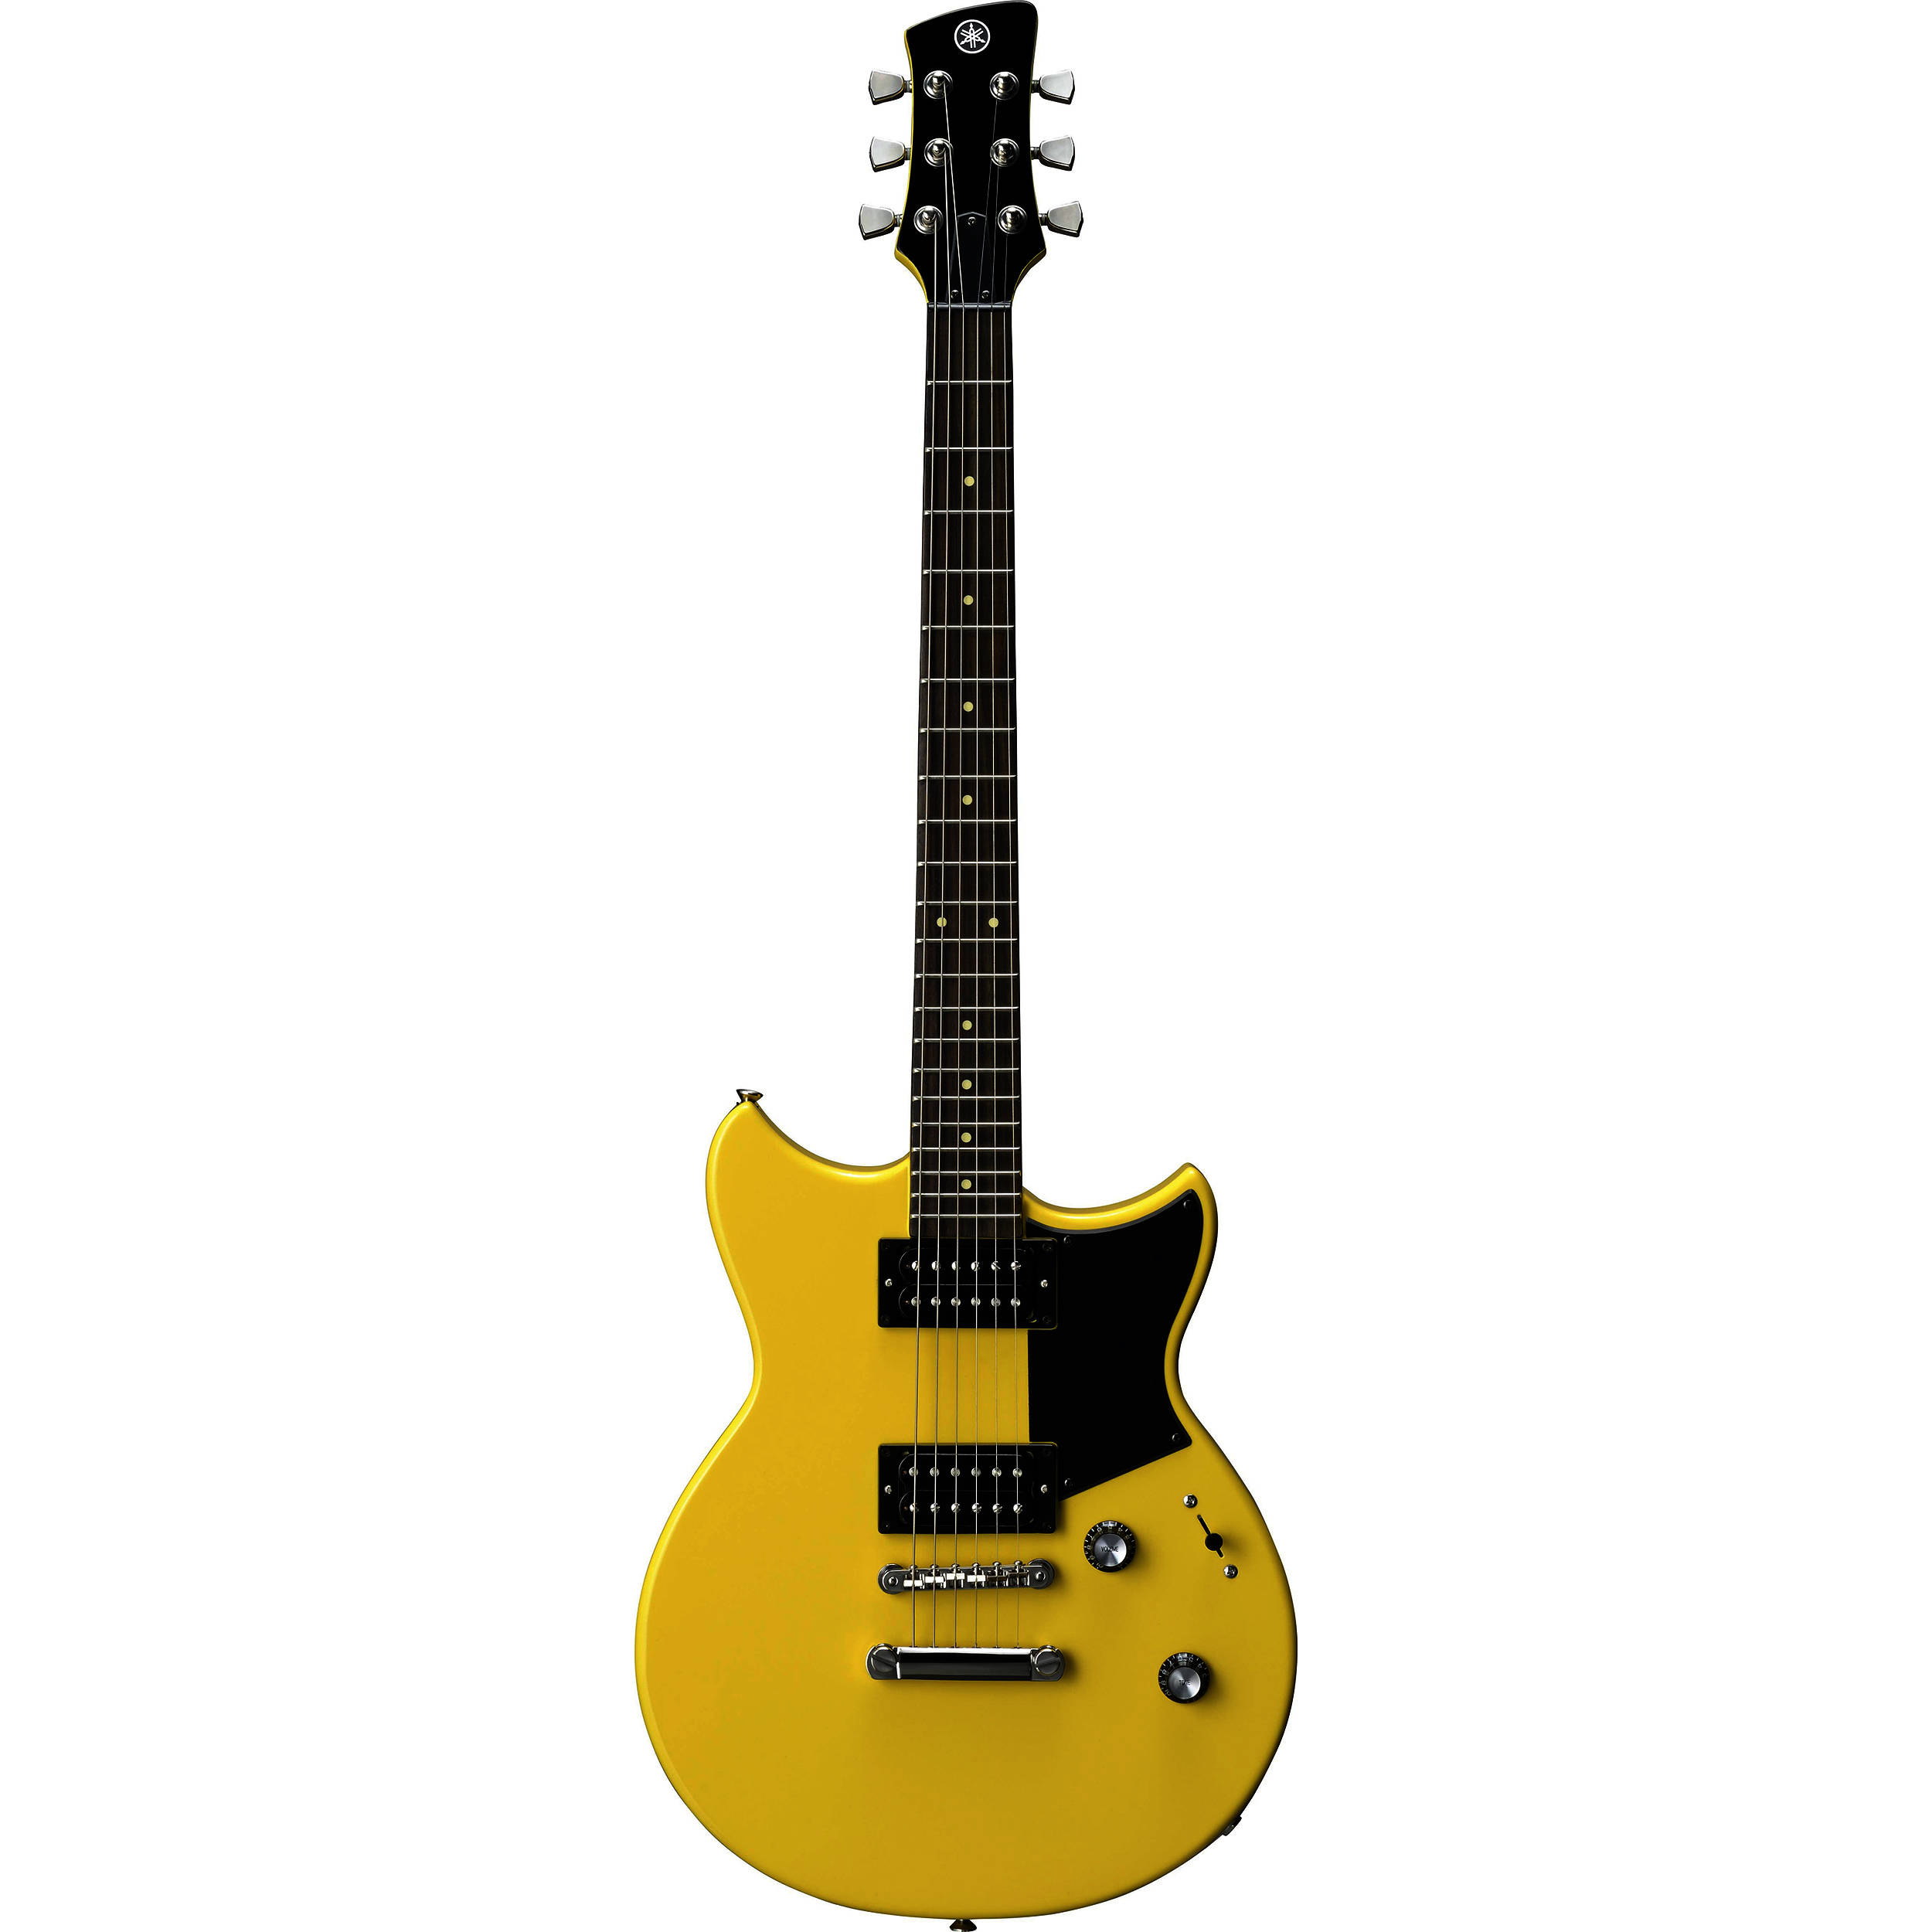 yamaha revstar rs320 electric guitar stock yellow rs320 syl. Black Bedroom Furniture Sets. Home Design Ideas